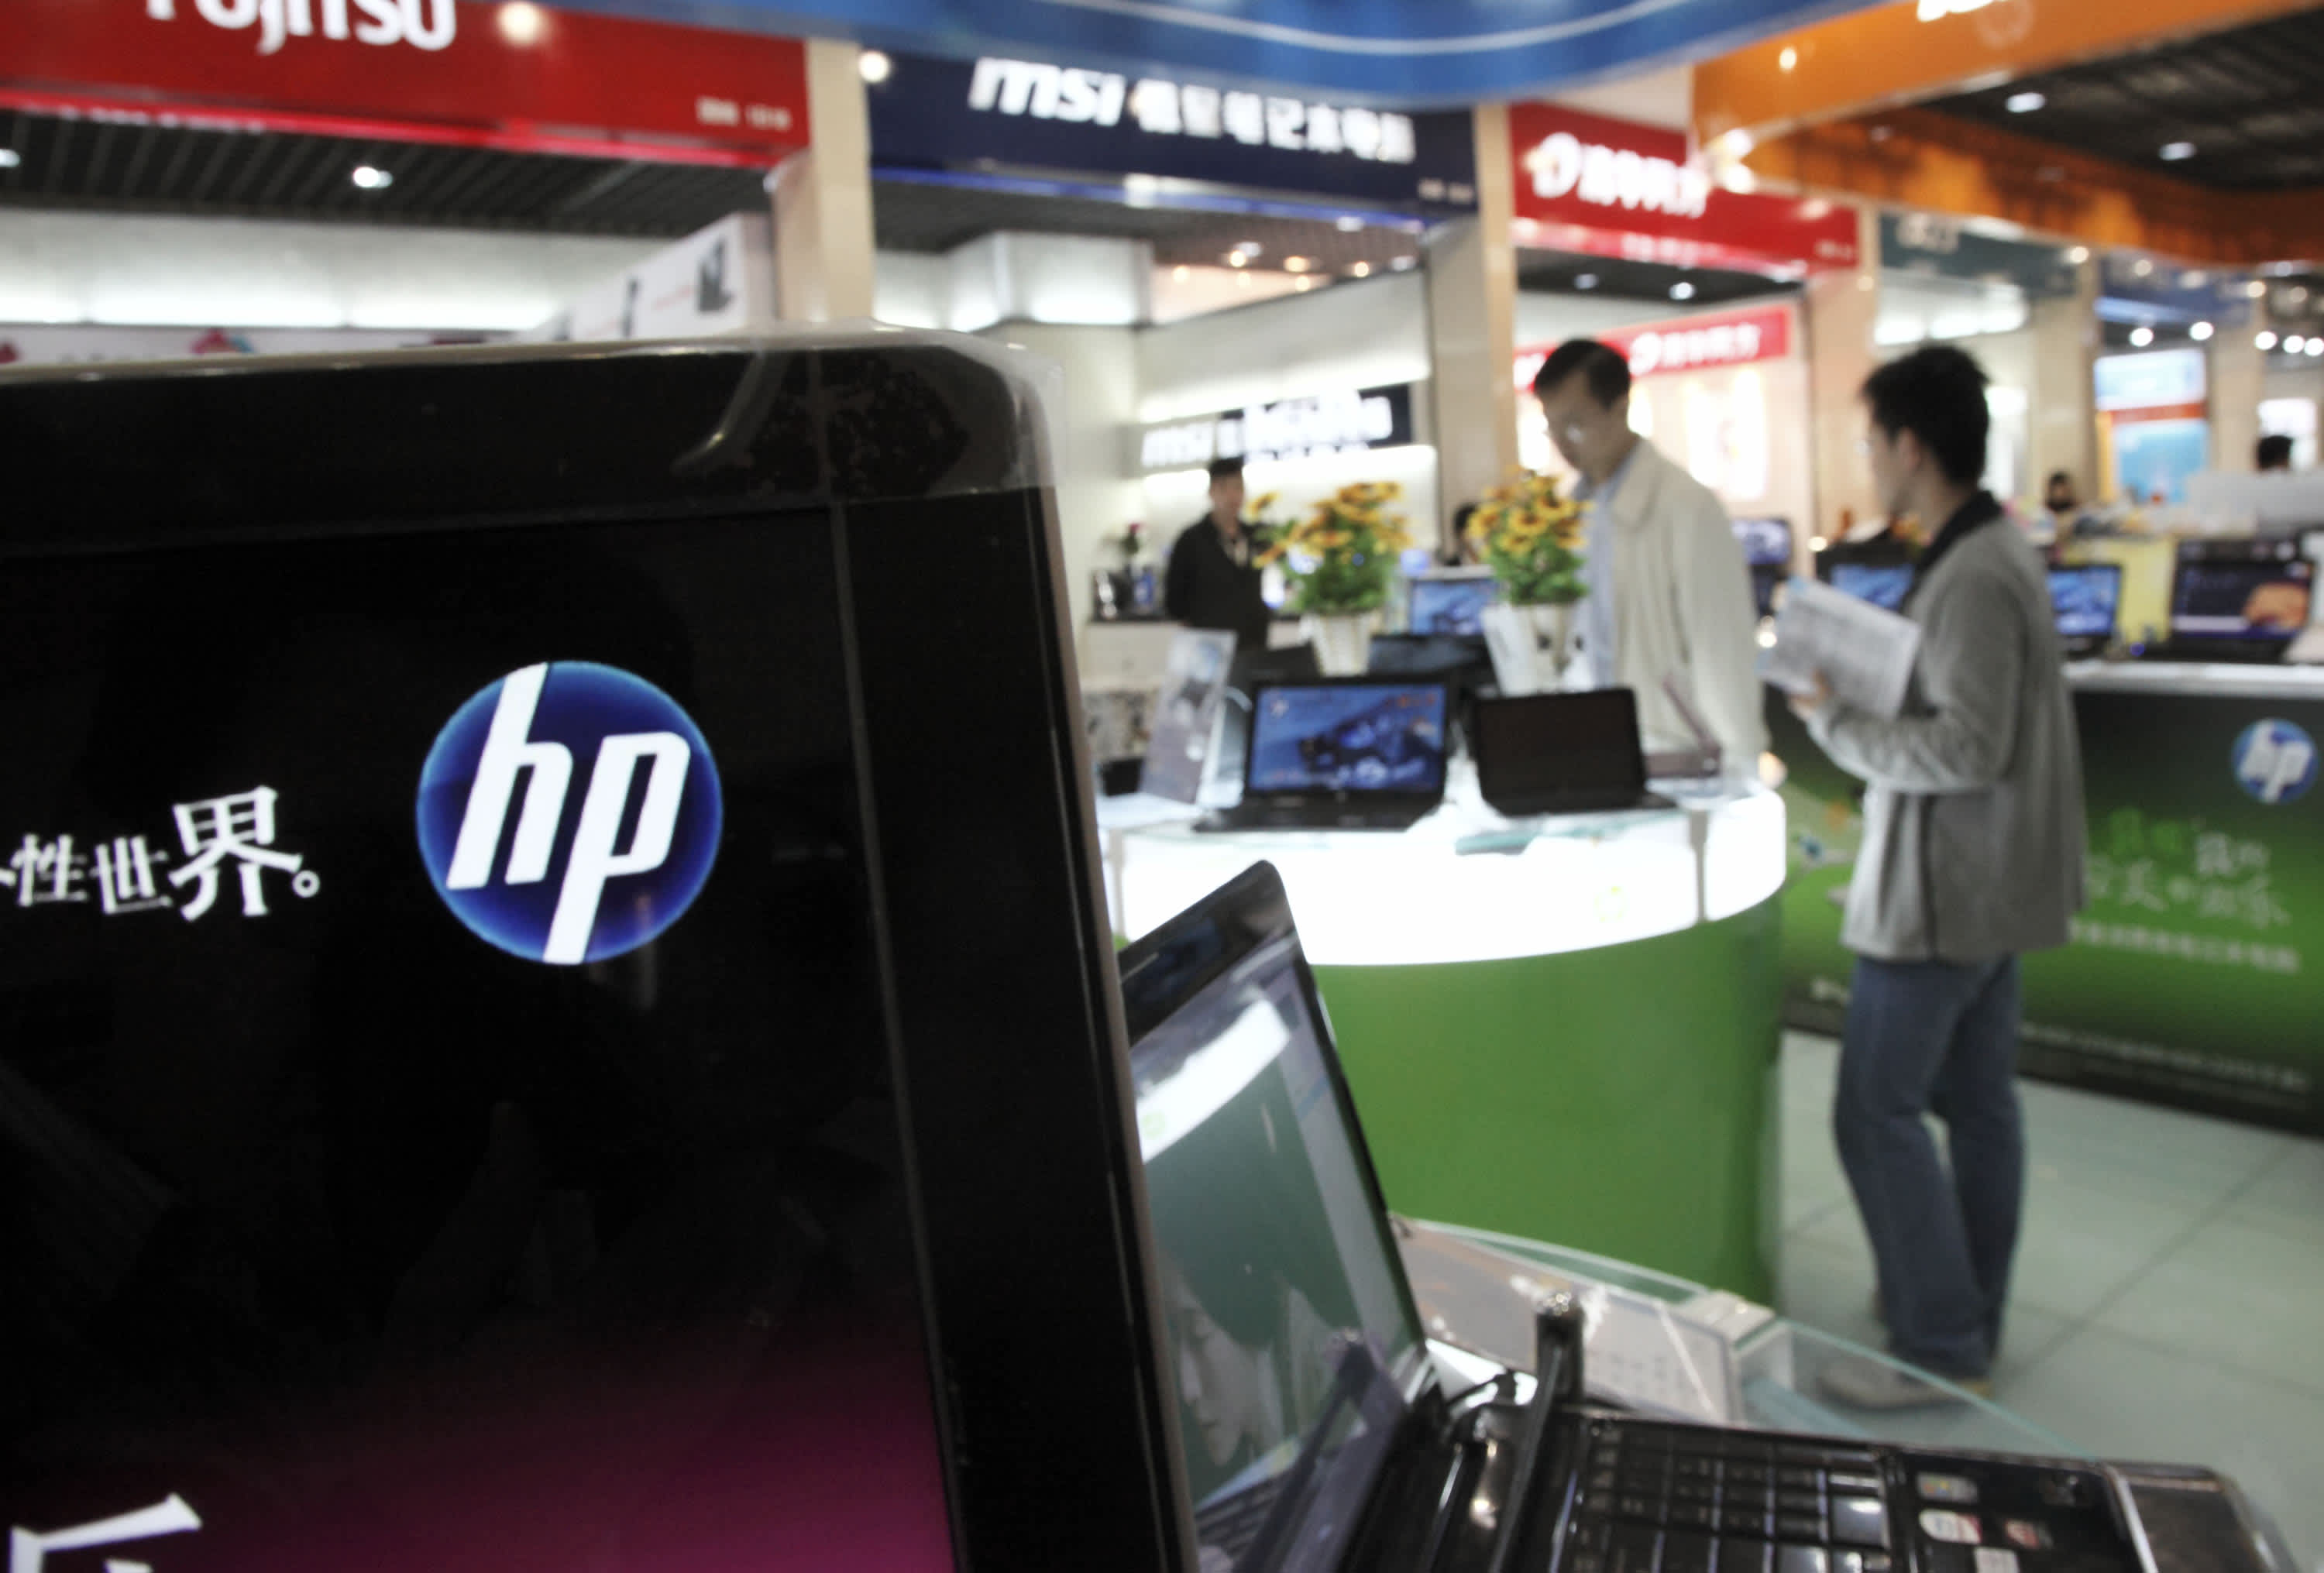 HP stock tumbles after the company announces plans to cut up to 9,000 jobs